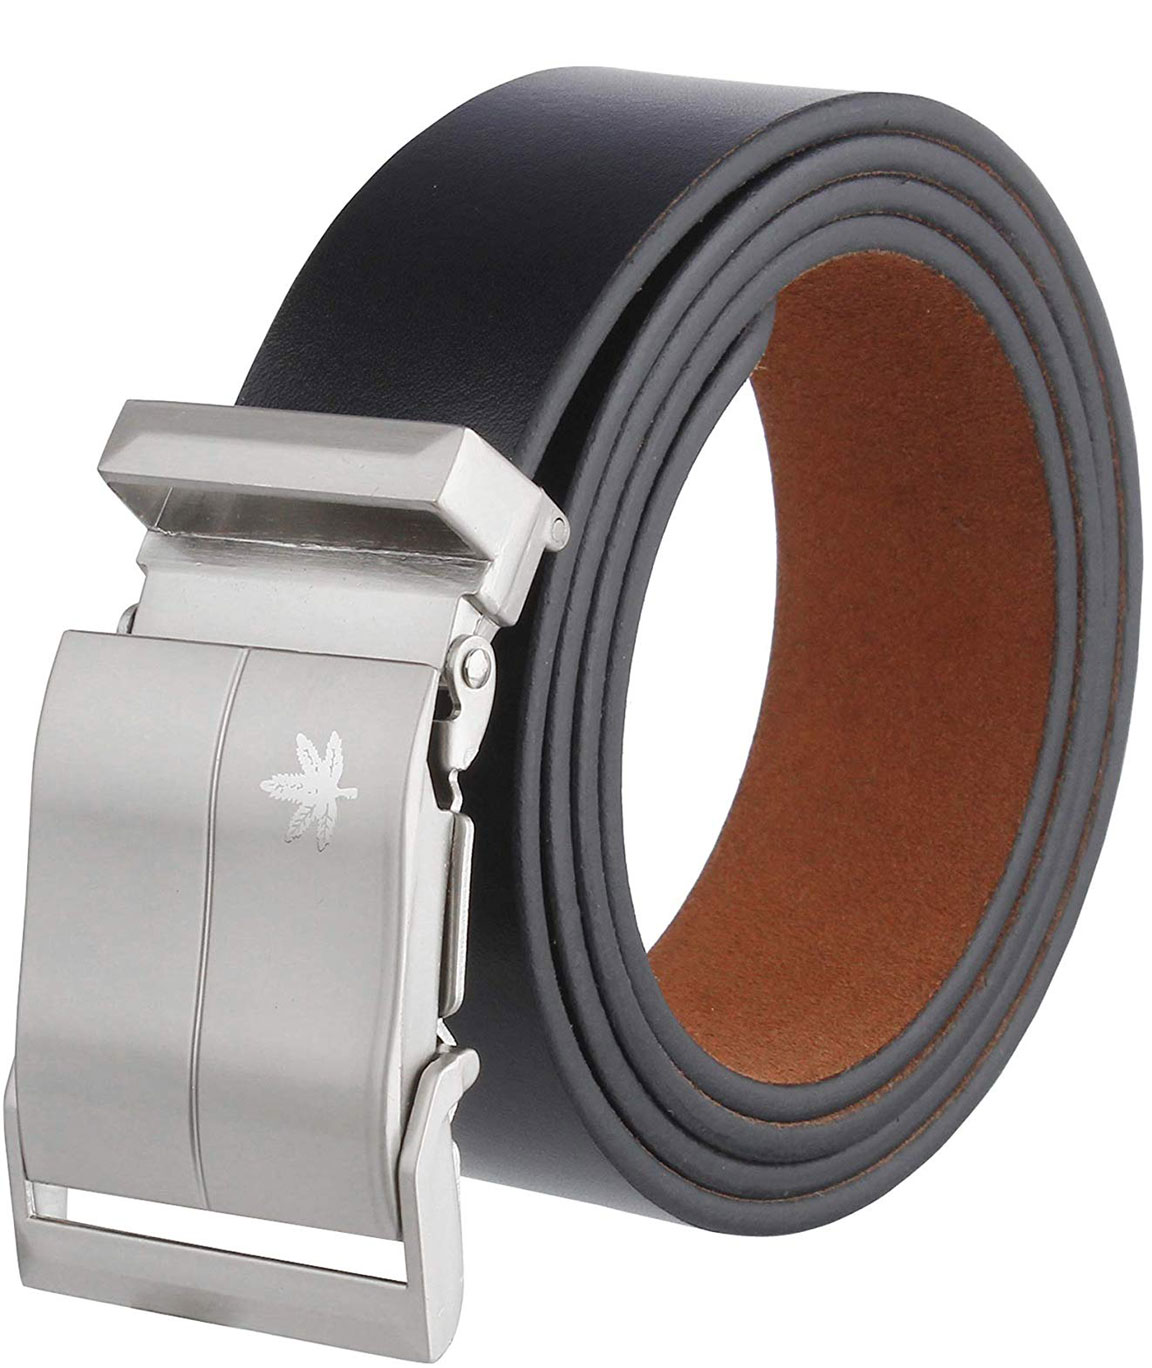 ZORO Men`s Genuine Leather Belt, (1 Year Guarantee) - belts for mens - belts for men casual stylish leather- belts for men formal branded, mens belt, brown belt, formal belt with army buckle